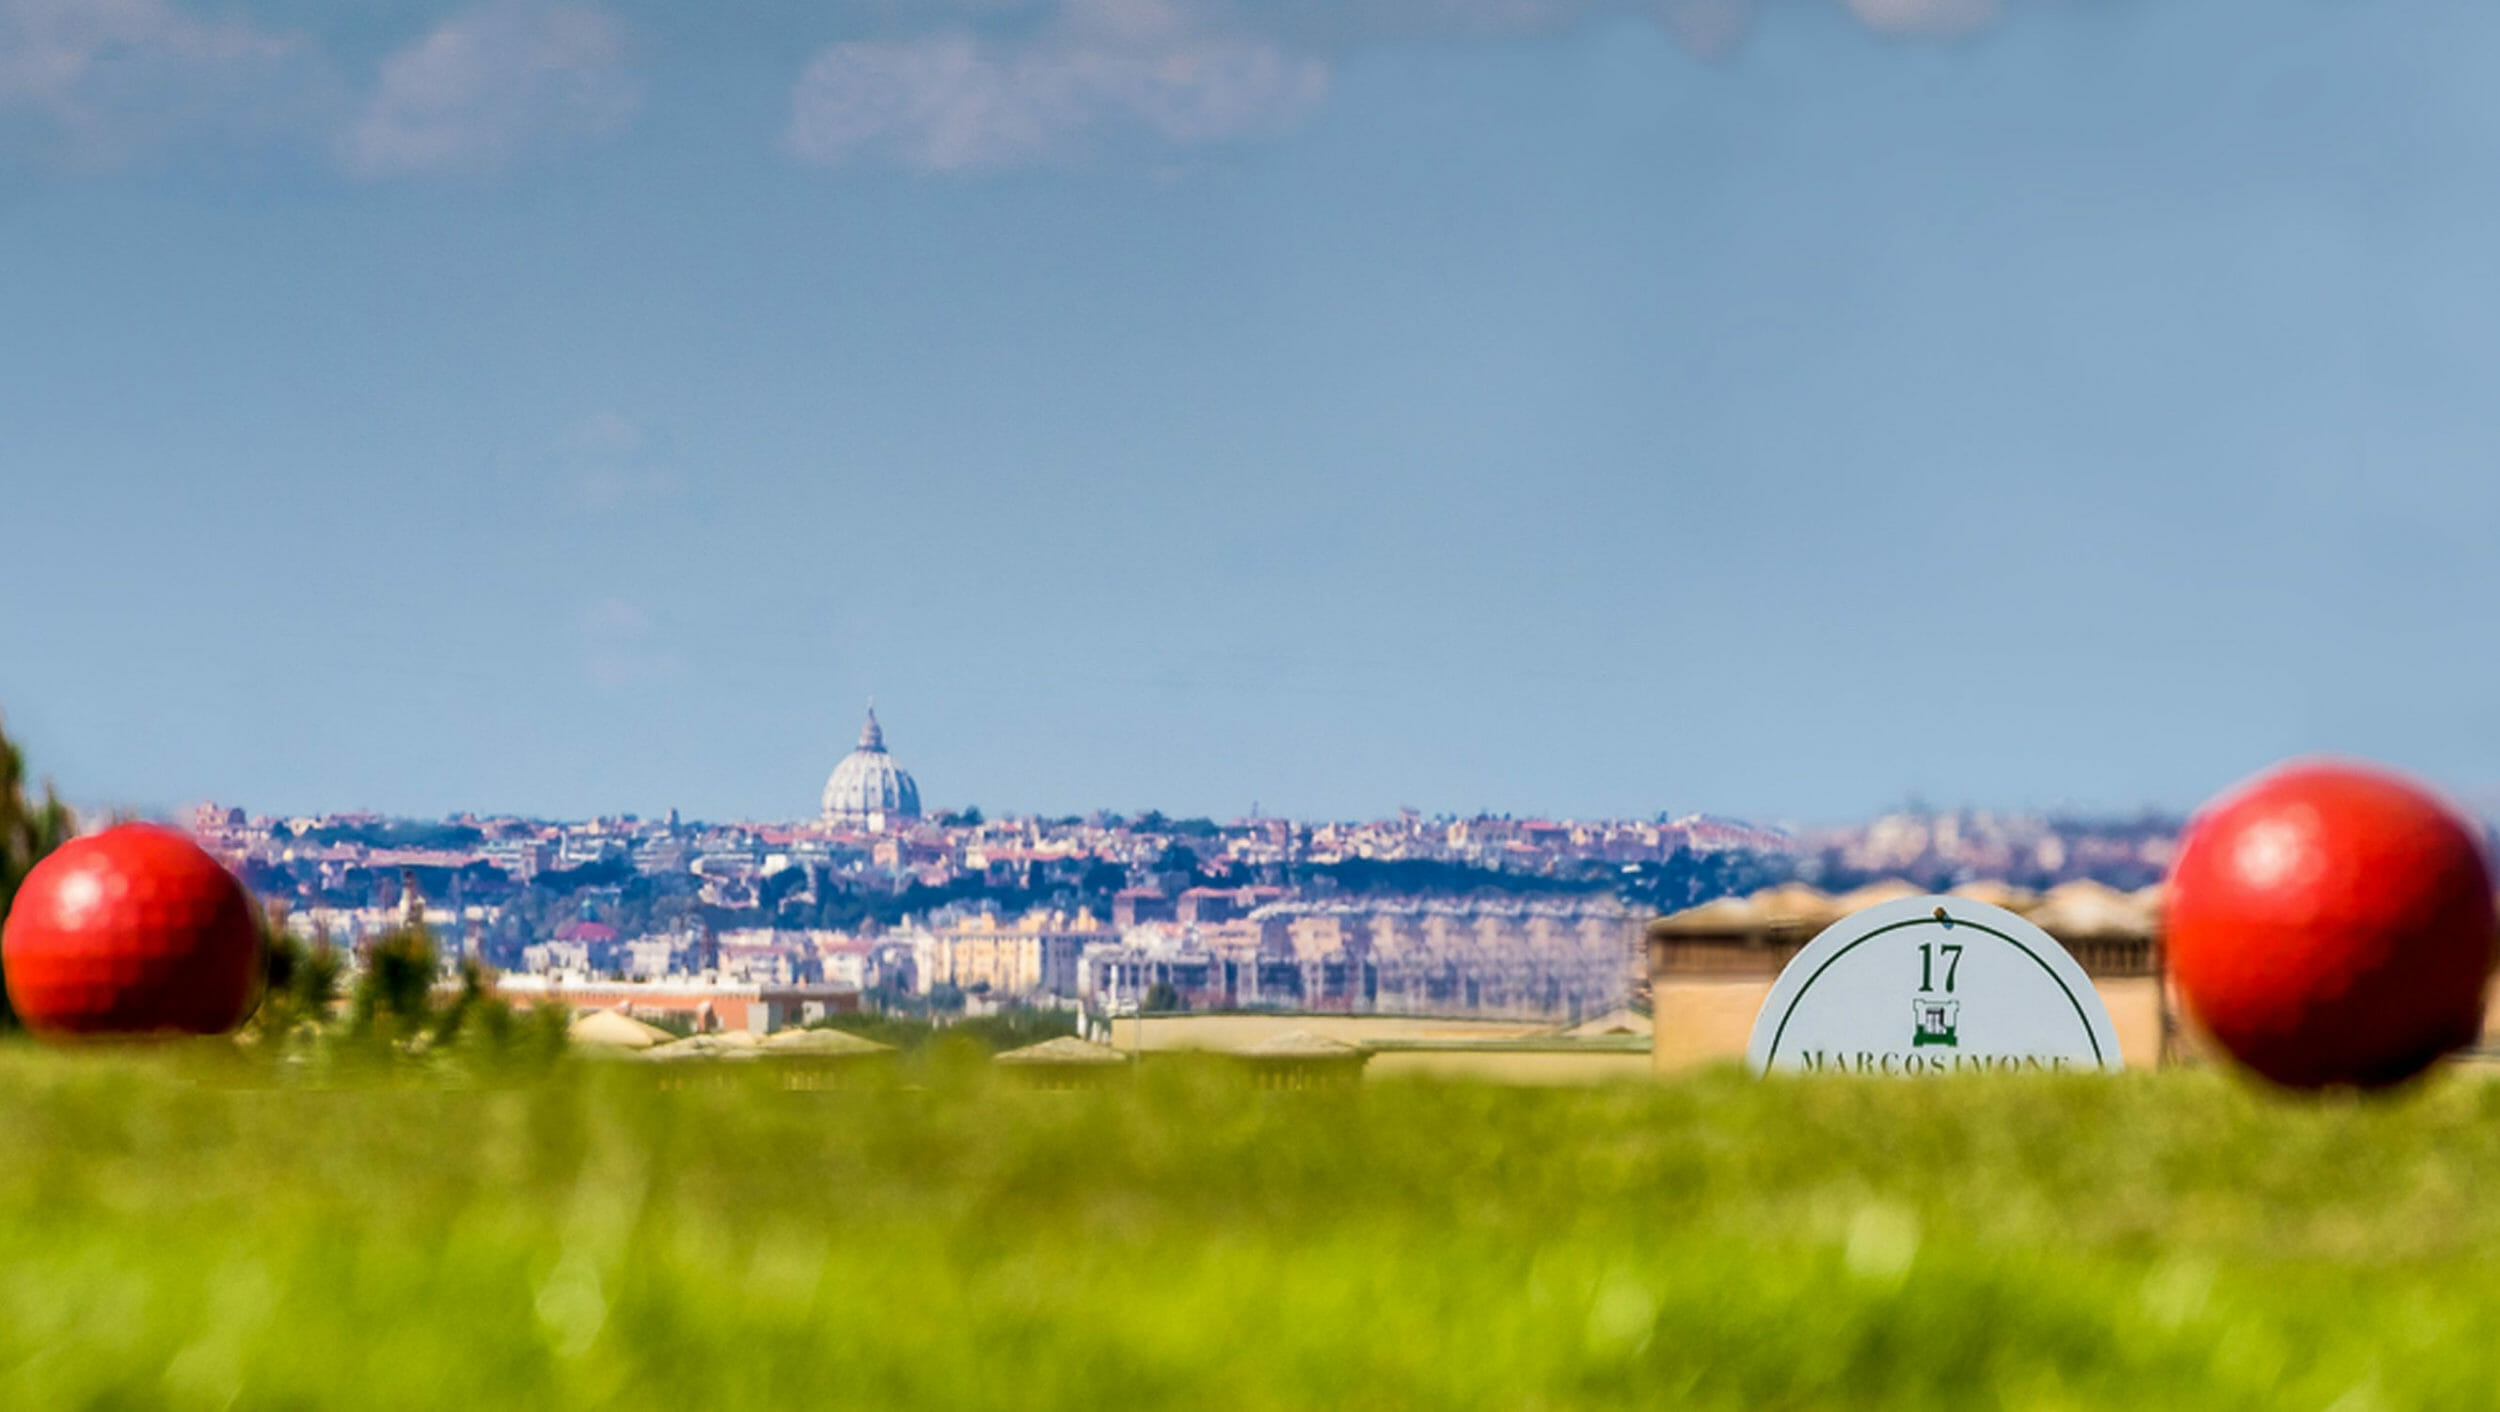 St Peter's dome visible from Marco Simone golf course